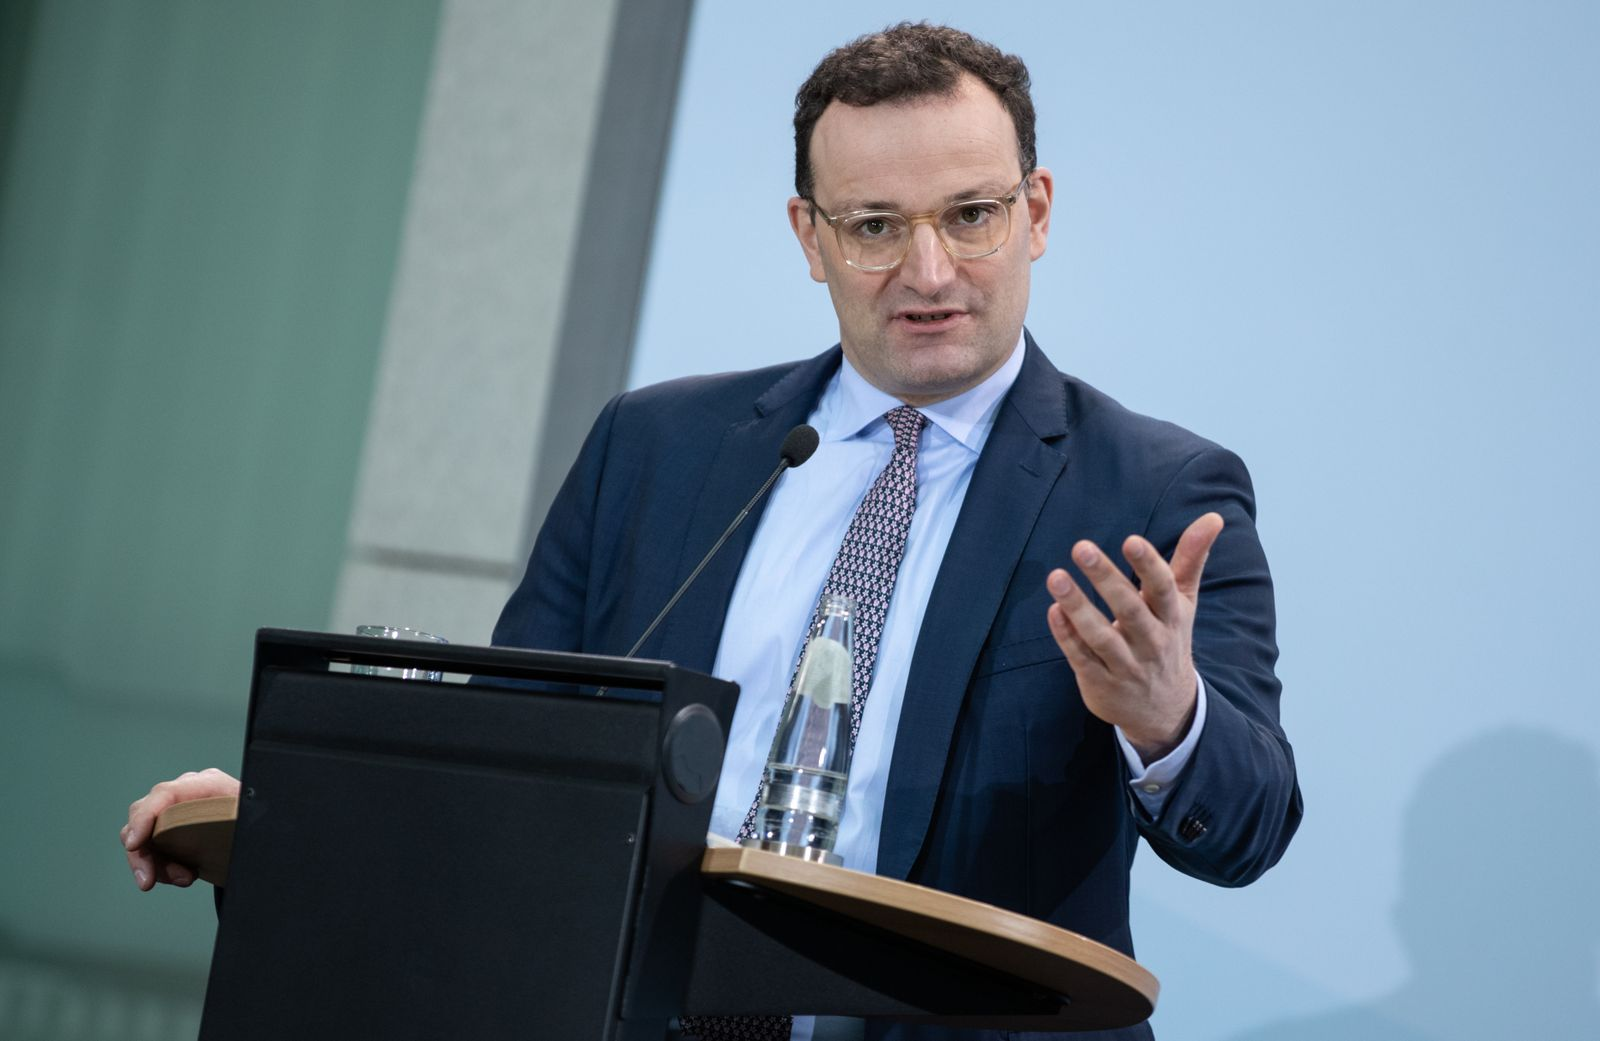 Press conference with German Health Minister Jens Spahn in Berlin, Germany - 06 Jan 2021